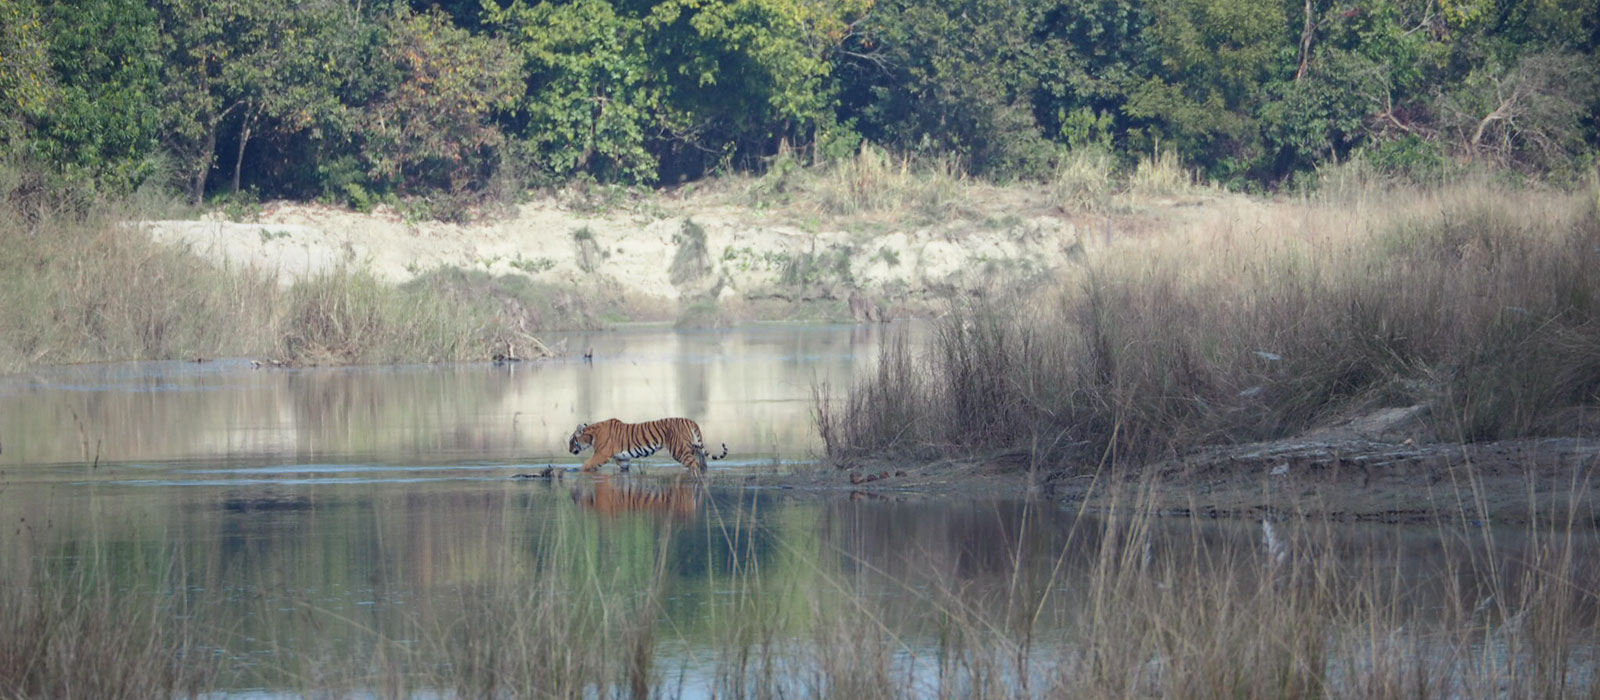 Tiger tracking tour in Bardia